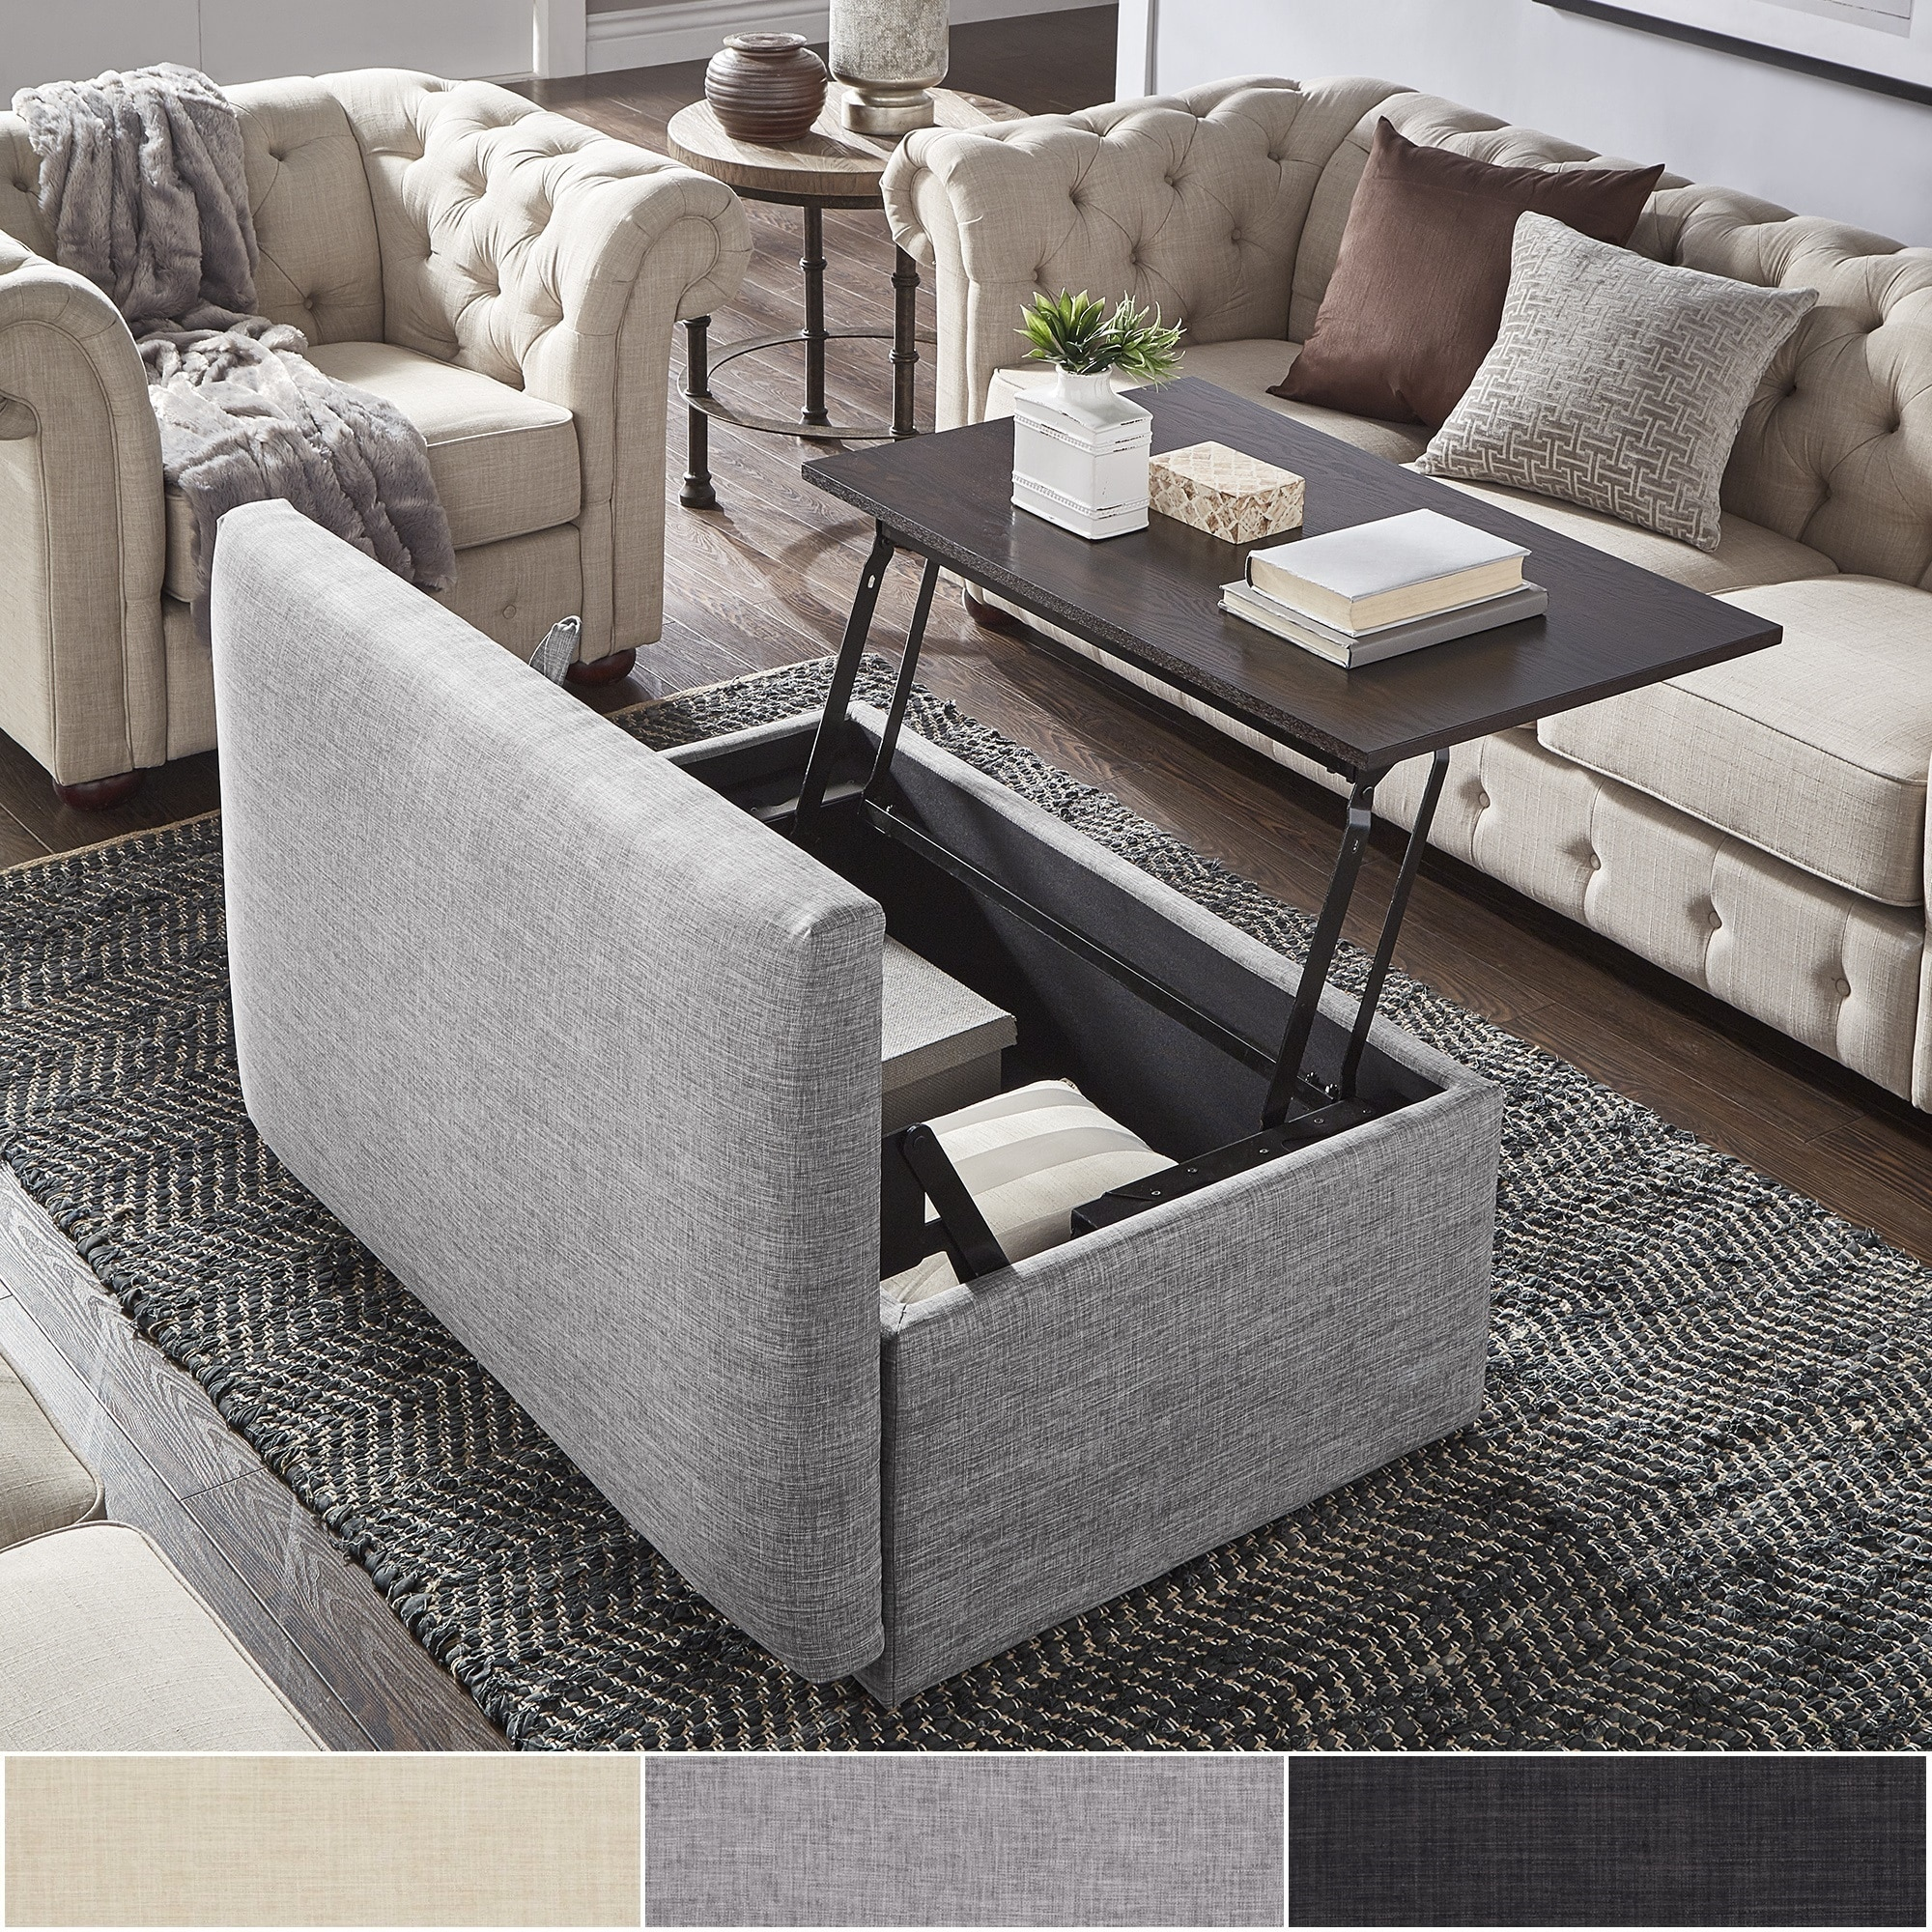 Landen Lift Top Upholstered Storage Ottoman Coffee Table By Inspire Q Artisan Overstock 22377961